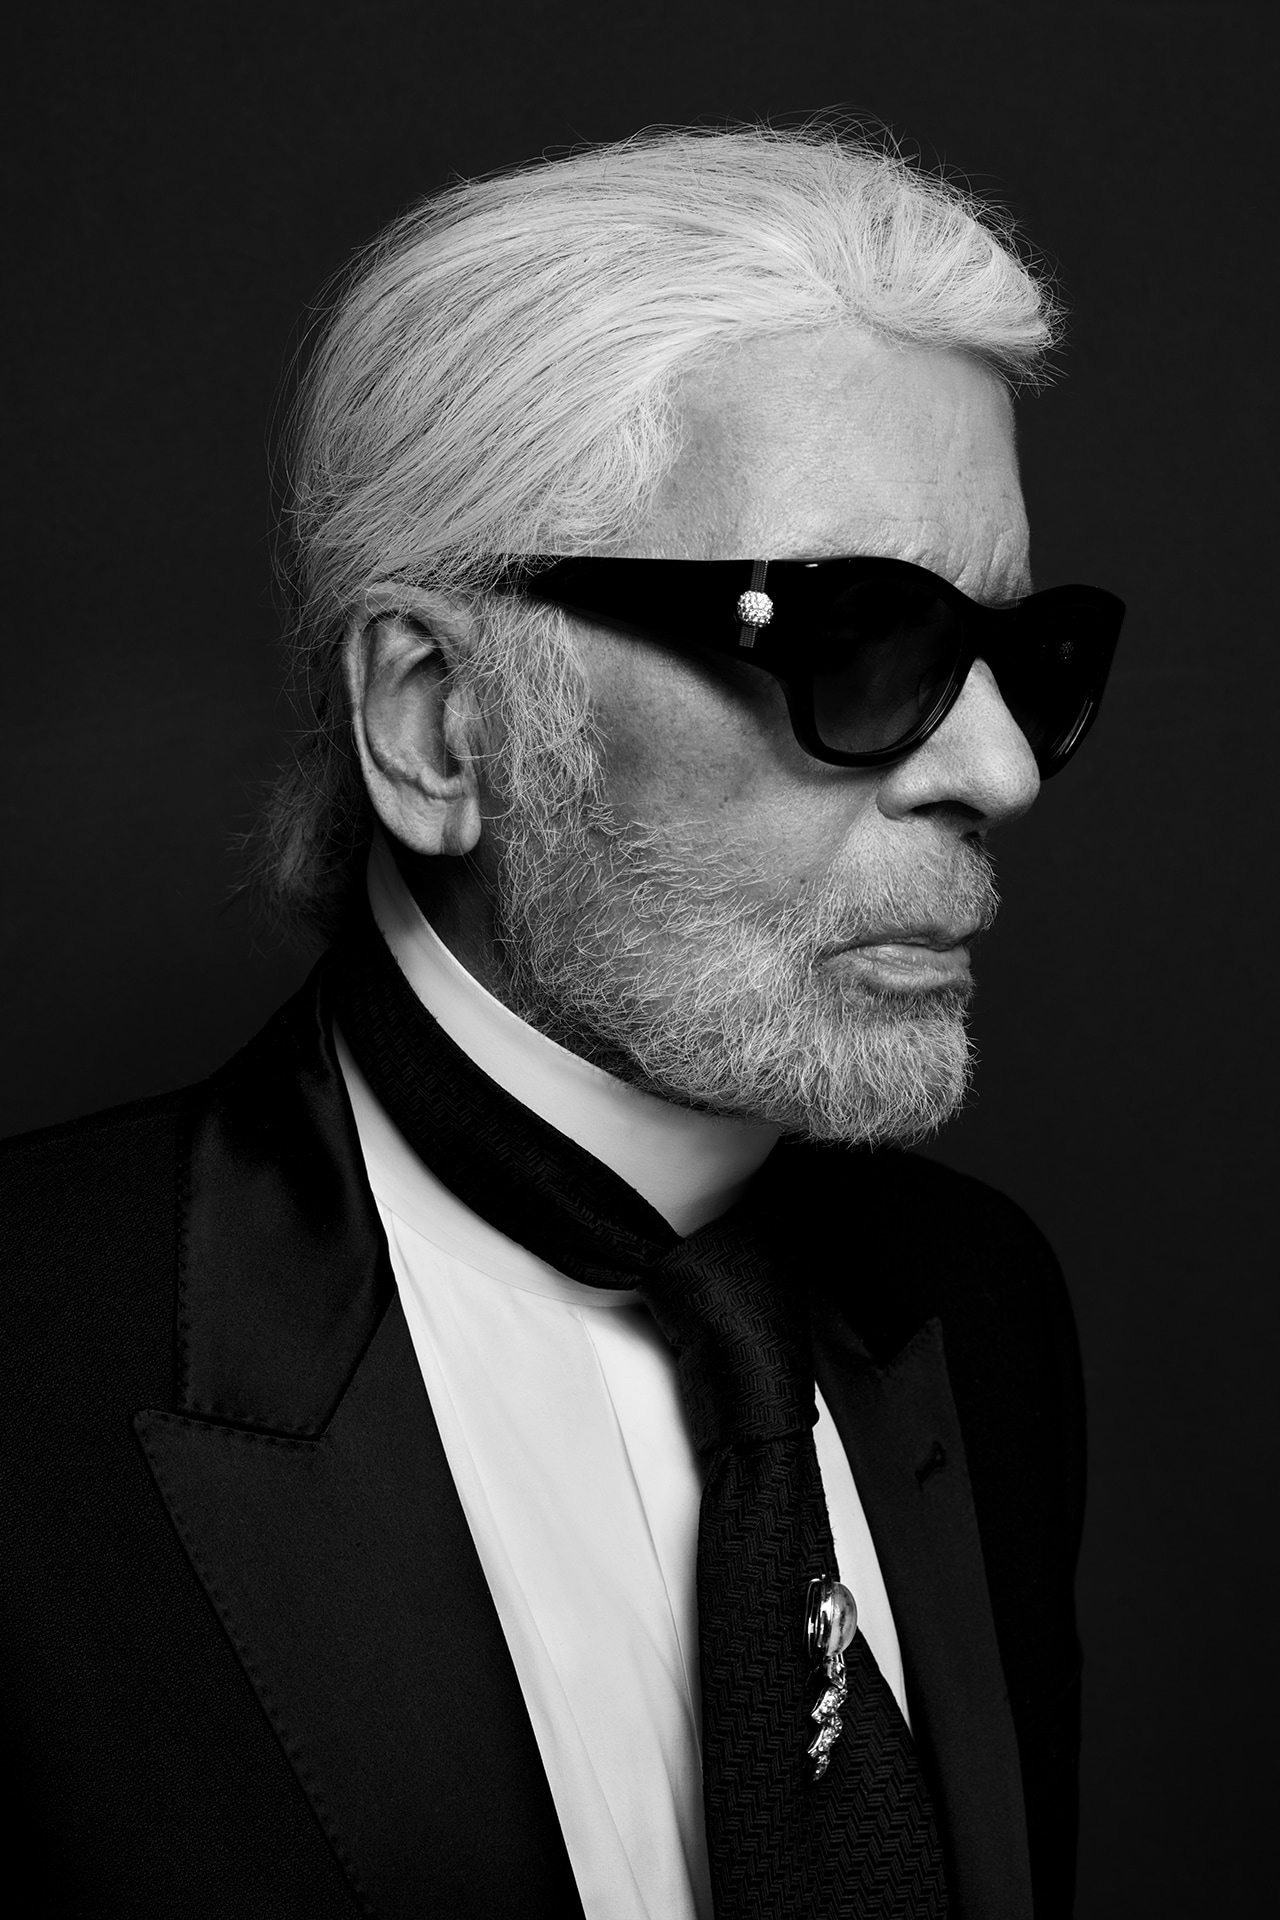 60ed12a4806 Karl Lagerfeld has died